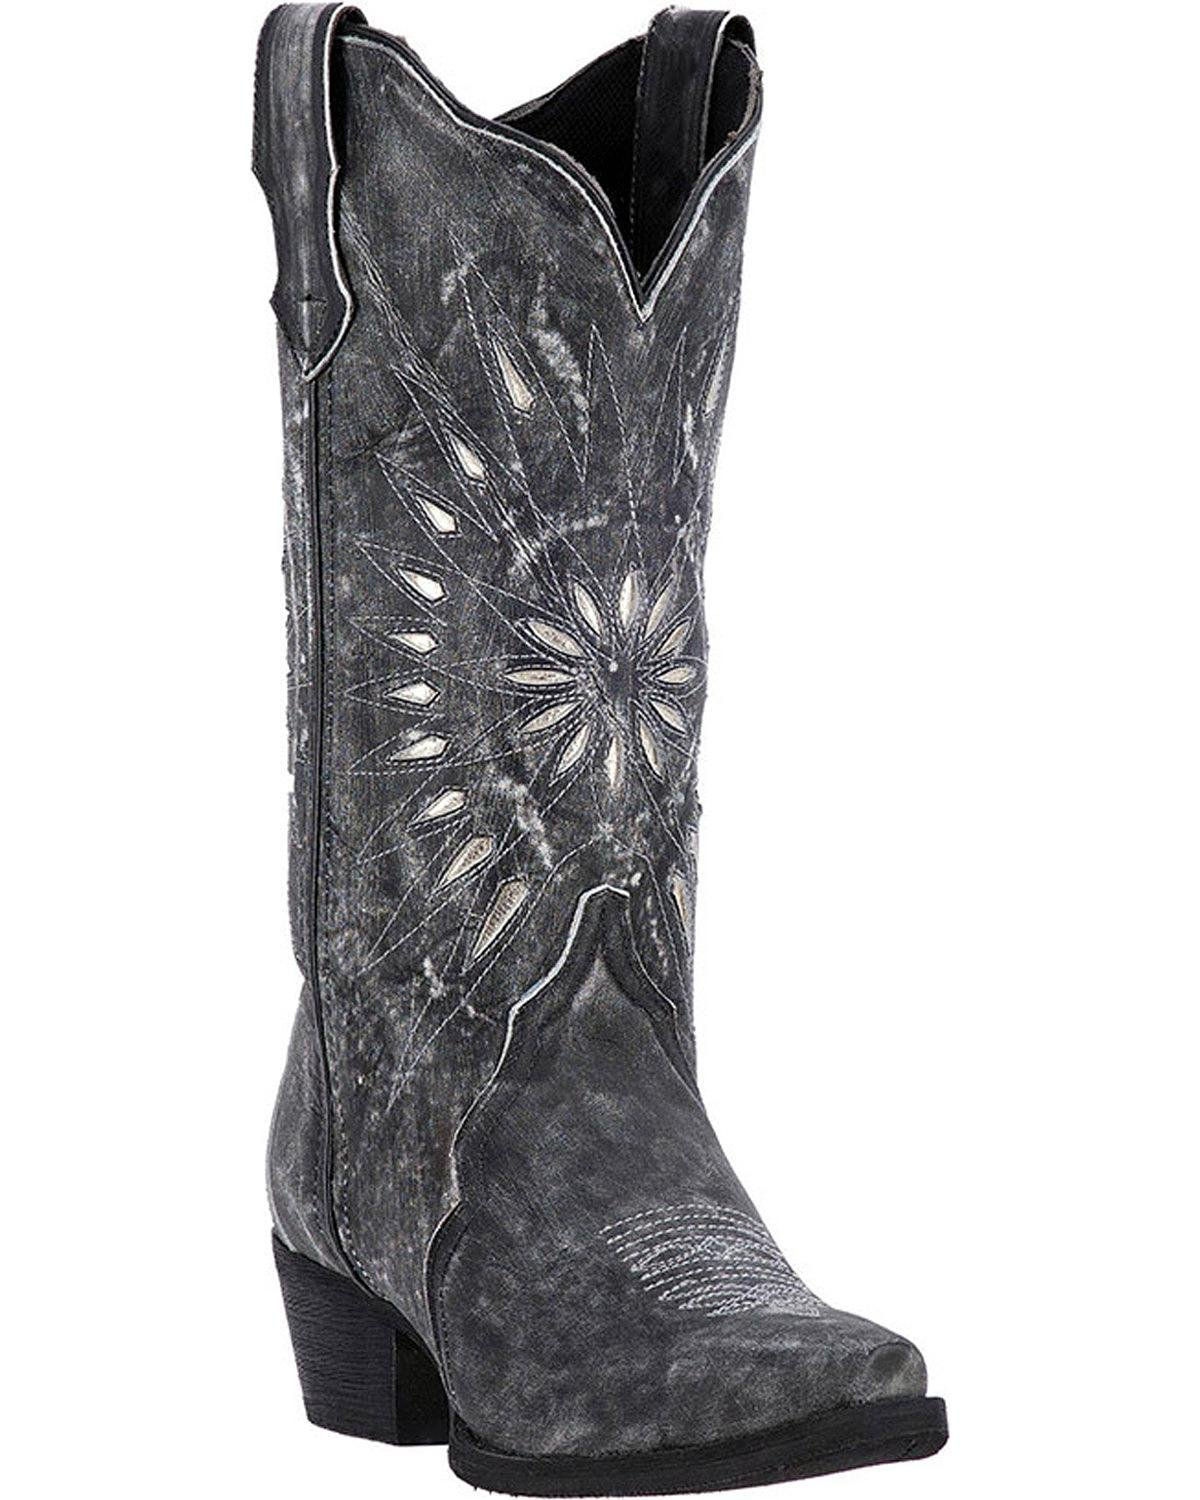 Laredo Womens Black Starburst Leather Cowboy Boots 12in Cutout 9 M